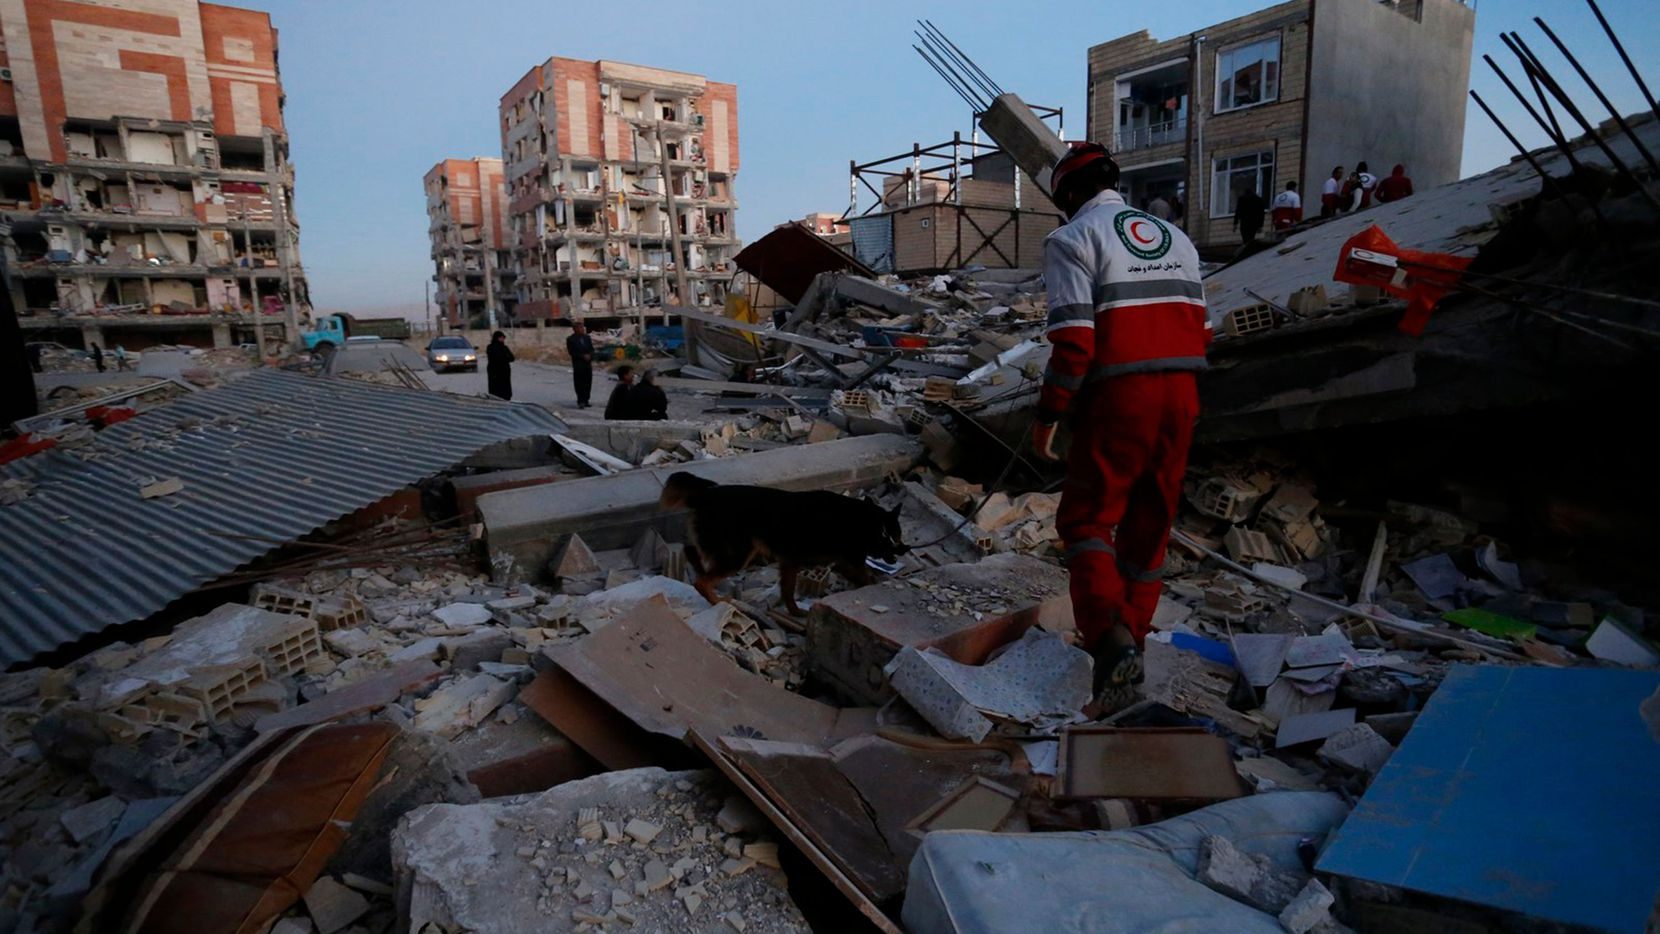 Rescue personnel conduct search and rescue work following a 7.3-magnitude earthquake at Sarpol-e Zahab in Iran's Kermanshah province.